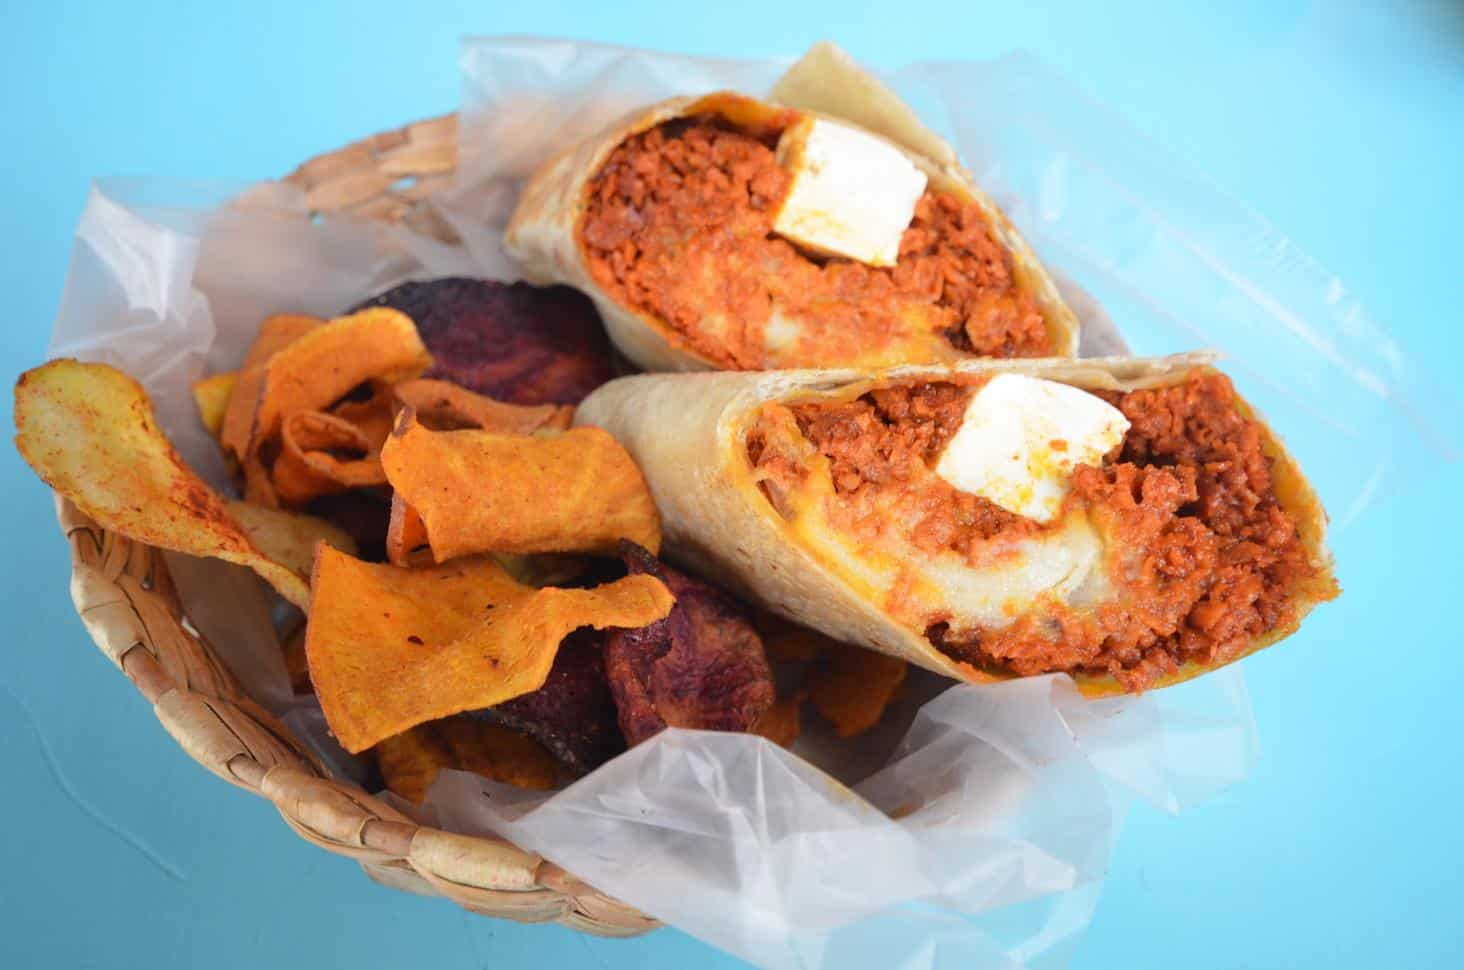 Delicious Soy Chorizo/Tofu burritos from Pan Comida, Mexico City (photo by Mindful Wanderlust)